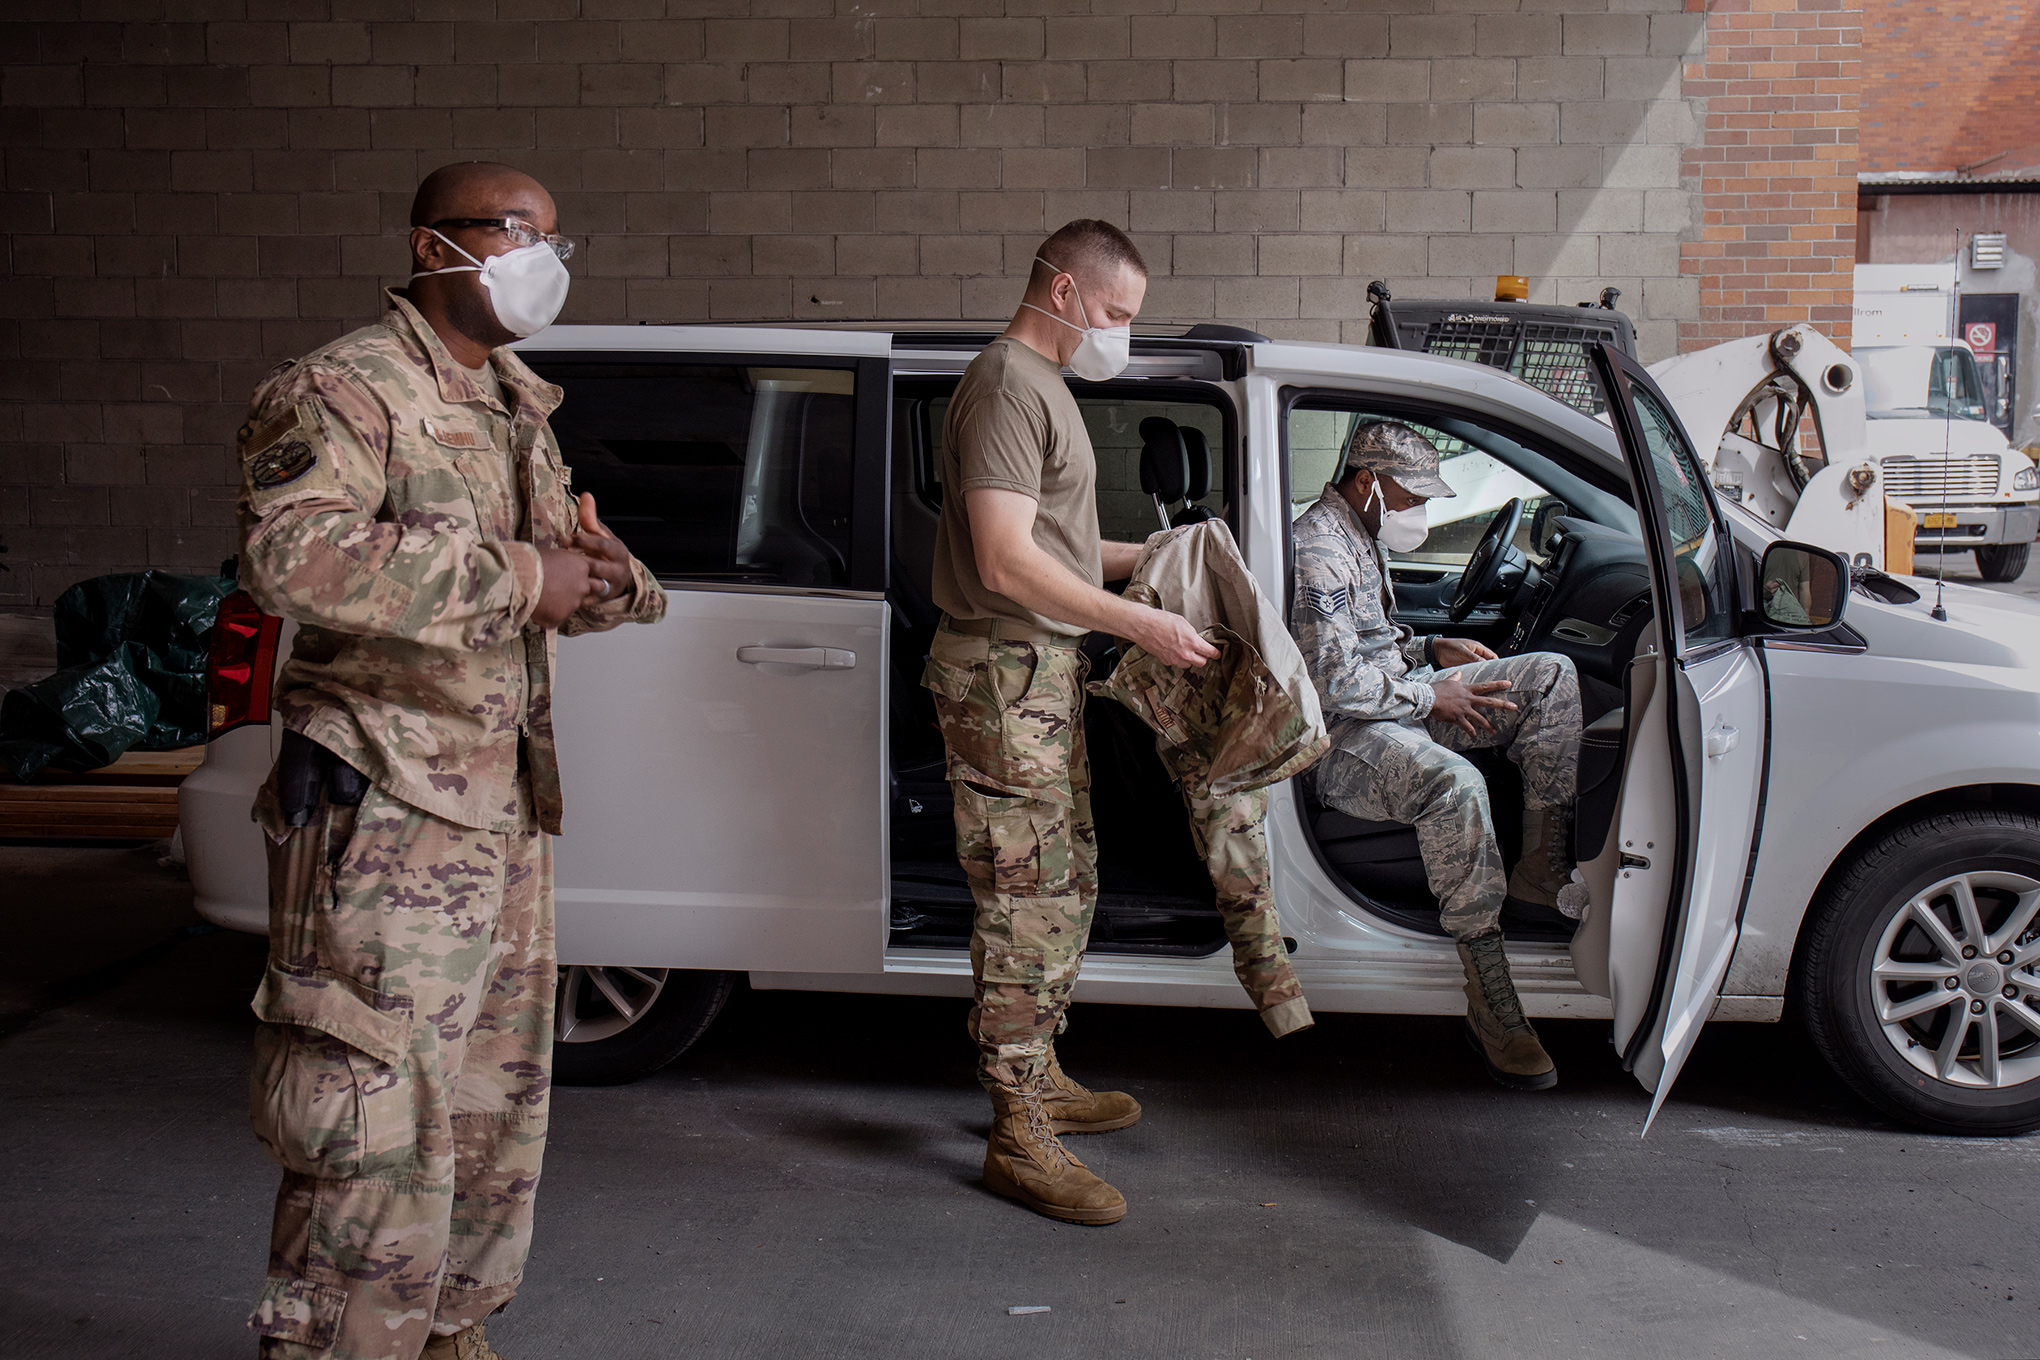 Senior Airman Steve Ollennu, at left, leads a National Guard team of three. A May 2 removal call took them to Lincoln Medical Center in the Bronx, the hospital where Ollennu was born.